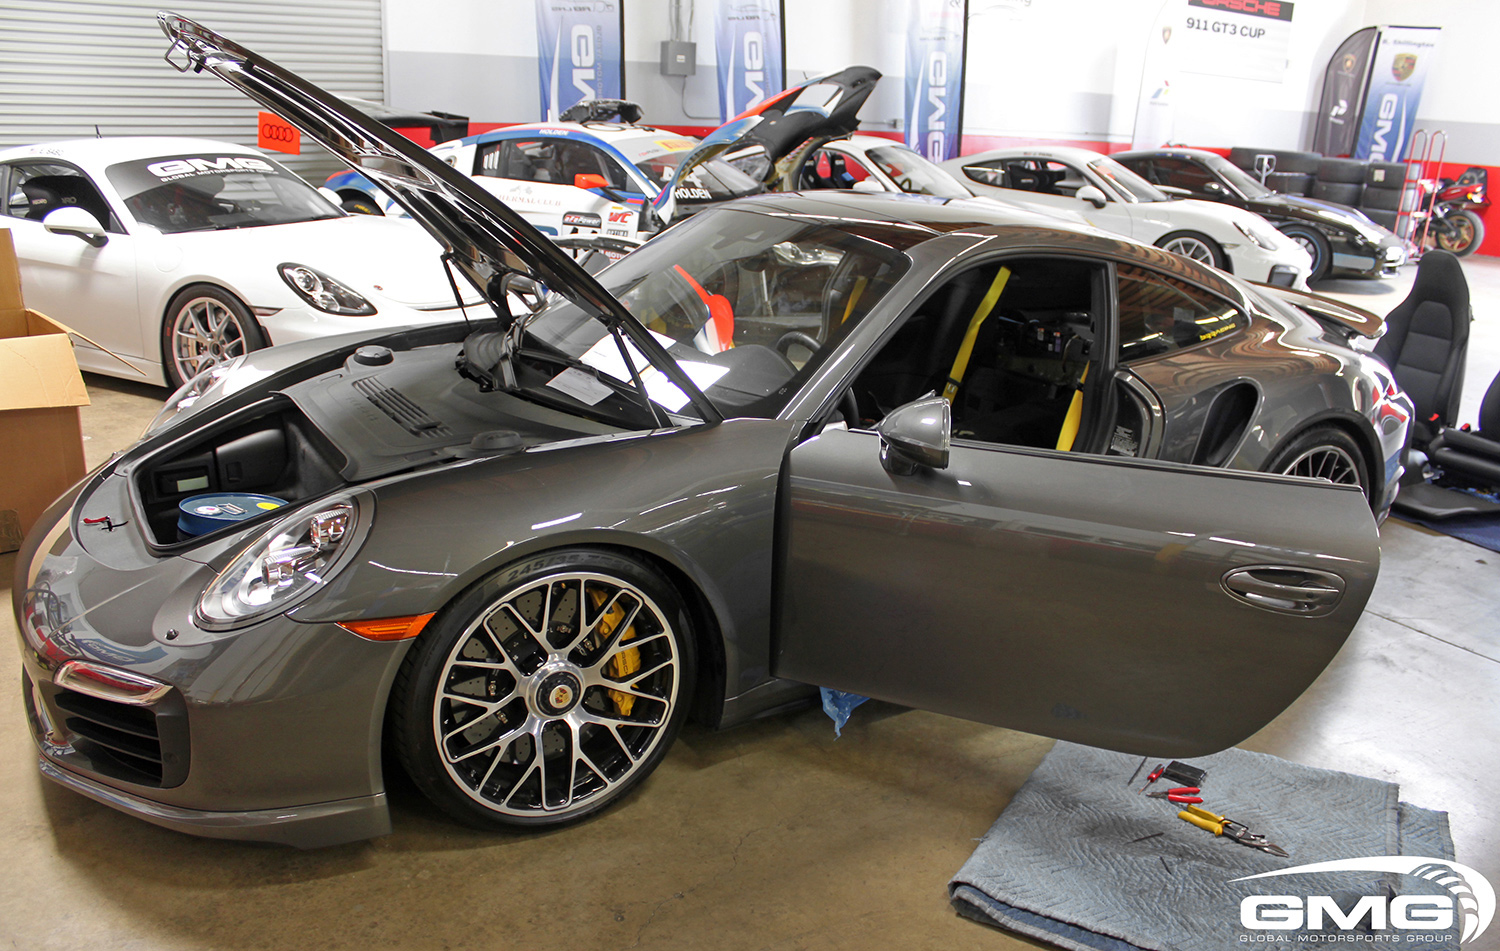 991.1 Turbo S (Rollbar and Race Seats)